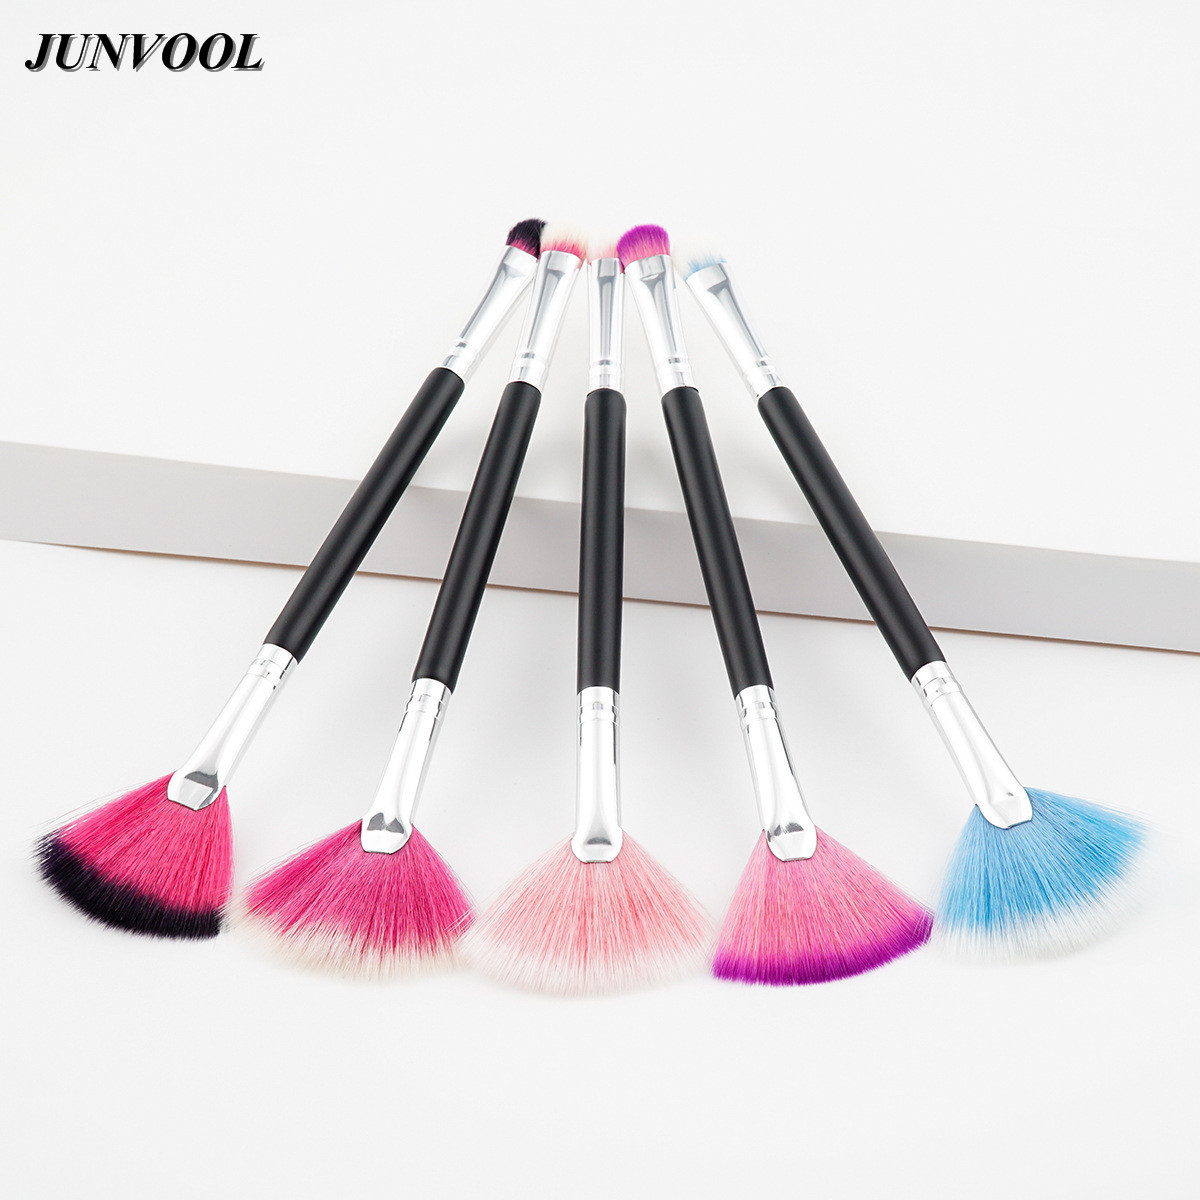 Cosmetic Small Fan Shaped Makeup Brush 5Pcs Double Ended Pro Foundation Eyeshadow Blending Highlighter Face Powder Brushes Tools slim fan shape powder concealor blending finishing highlighter highlighting makeup brush nail art brush for makeup